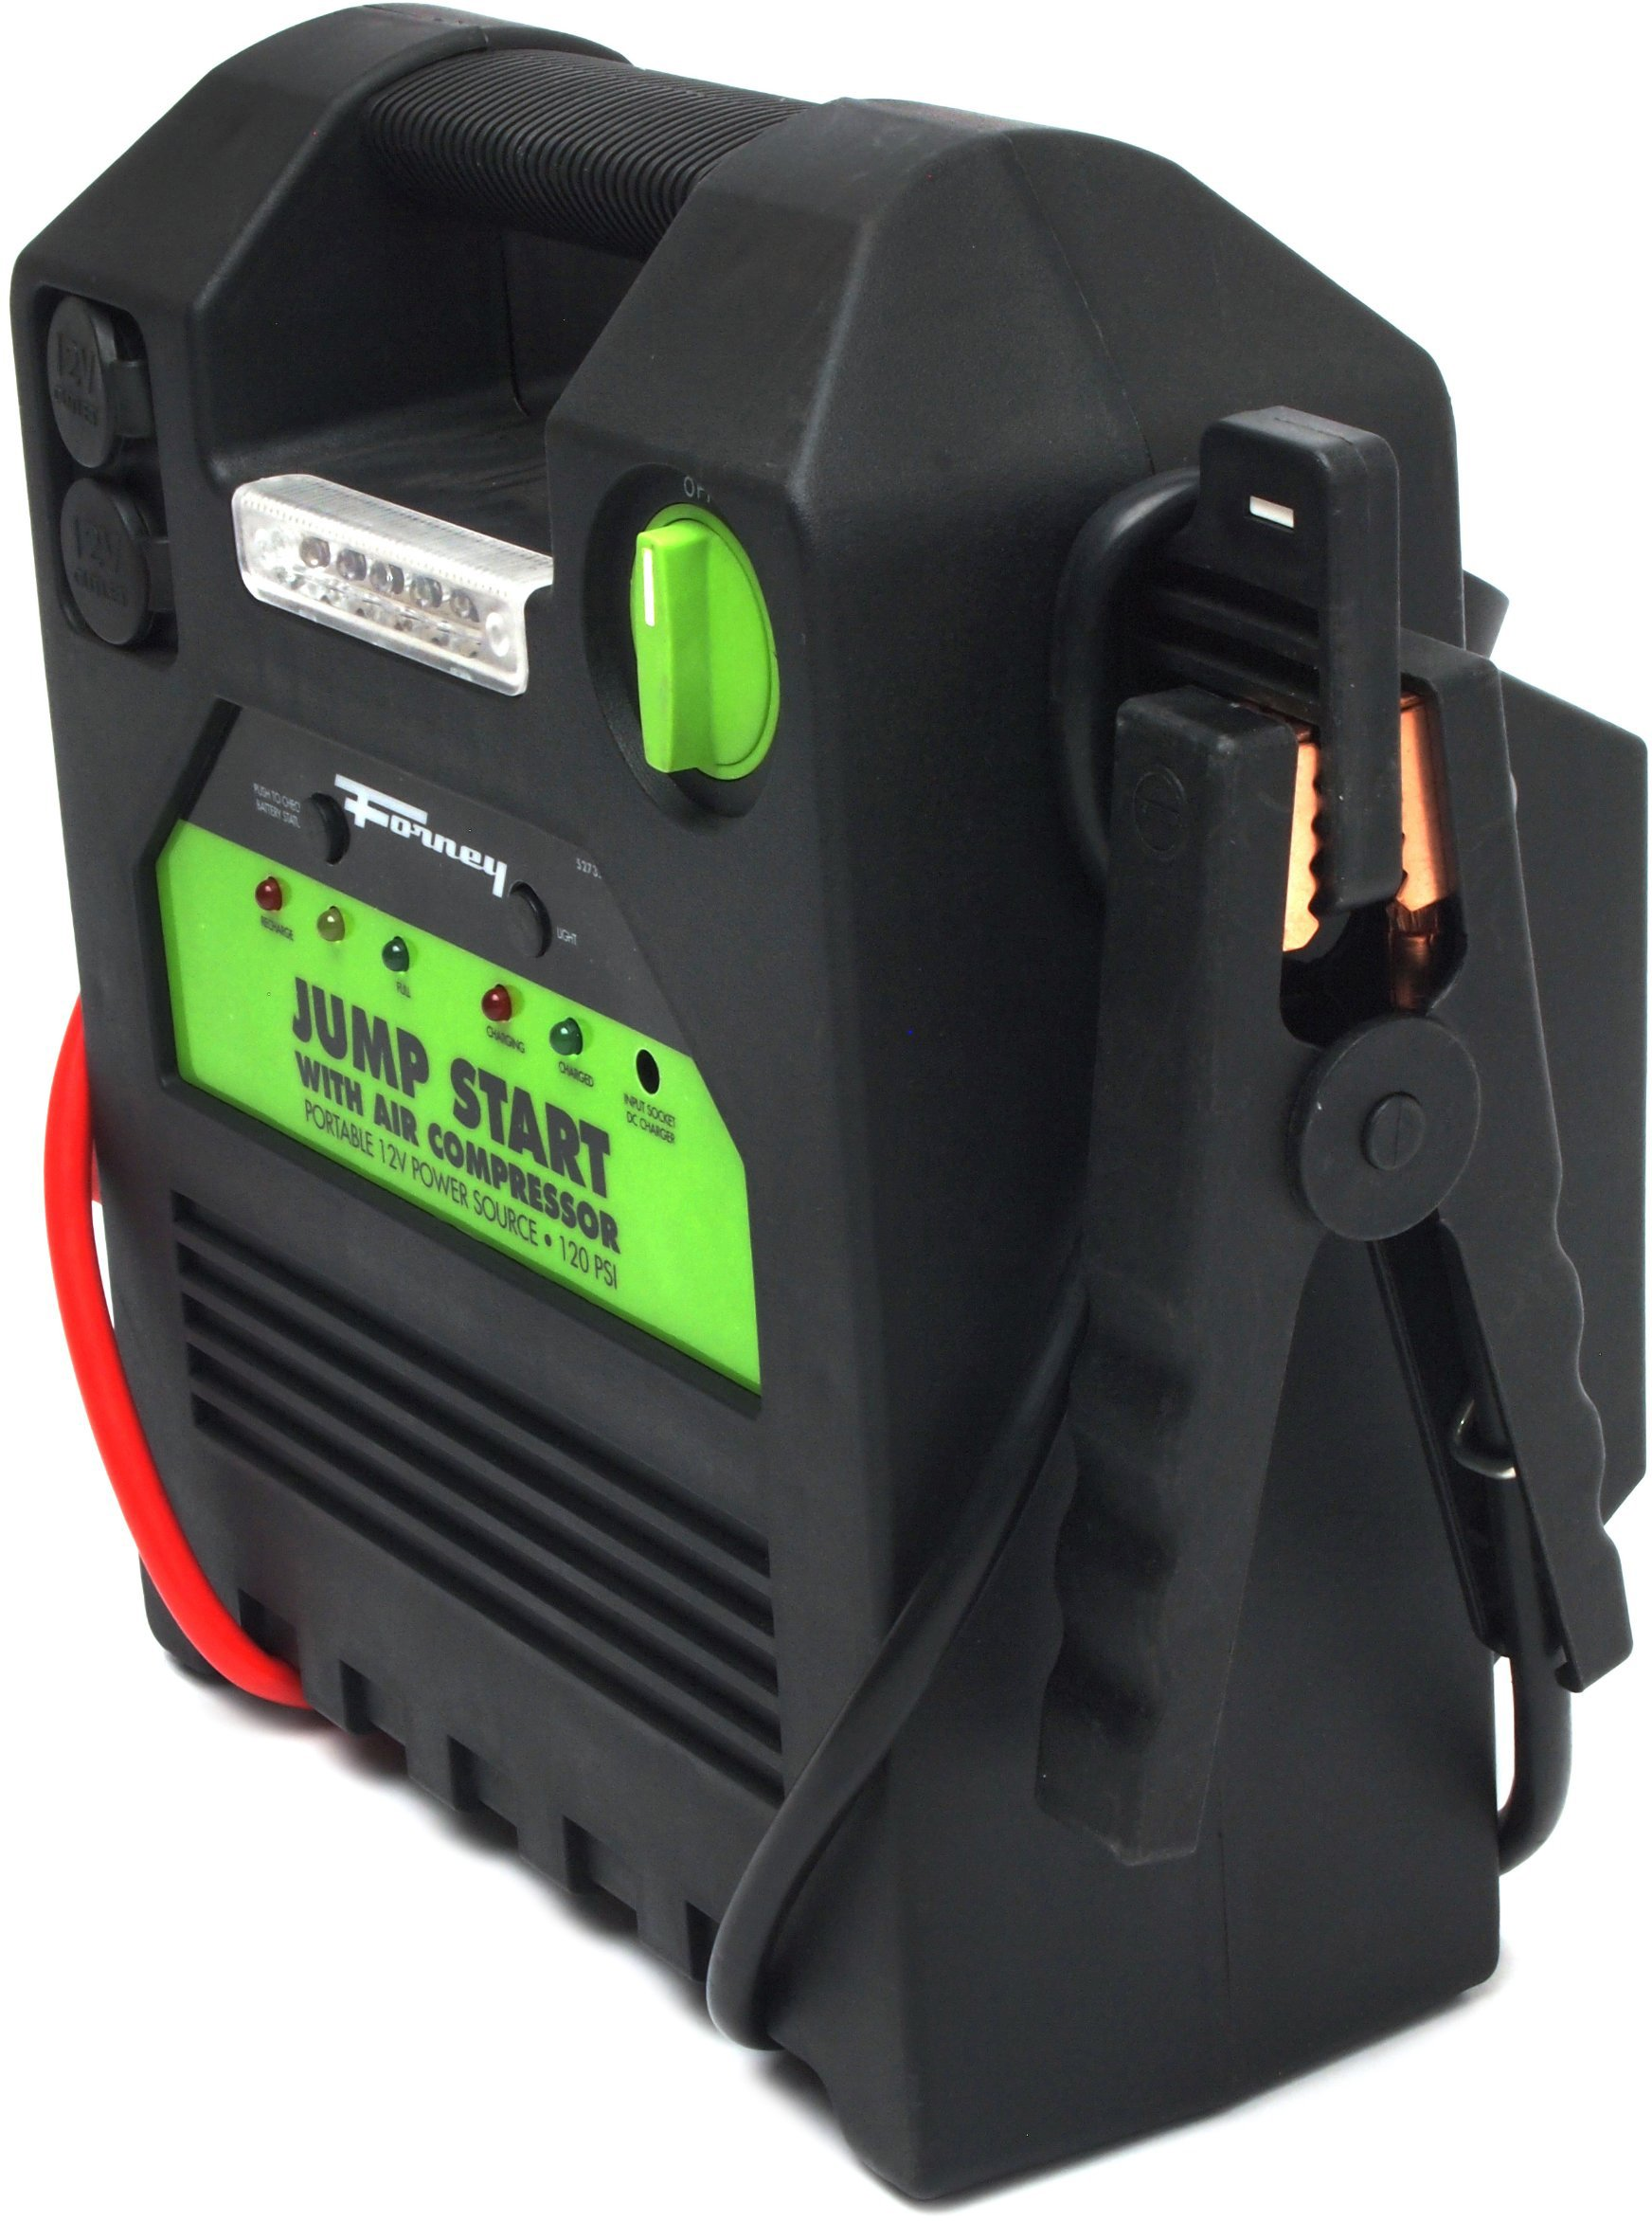 Forney 52732 Battery Booster Pack with 120 PSI Air Compressor, 18-Amp Hour, 12-Volt Jump Start by Forney (Image #11)